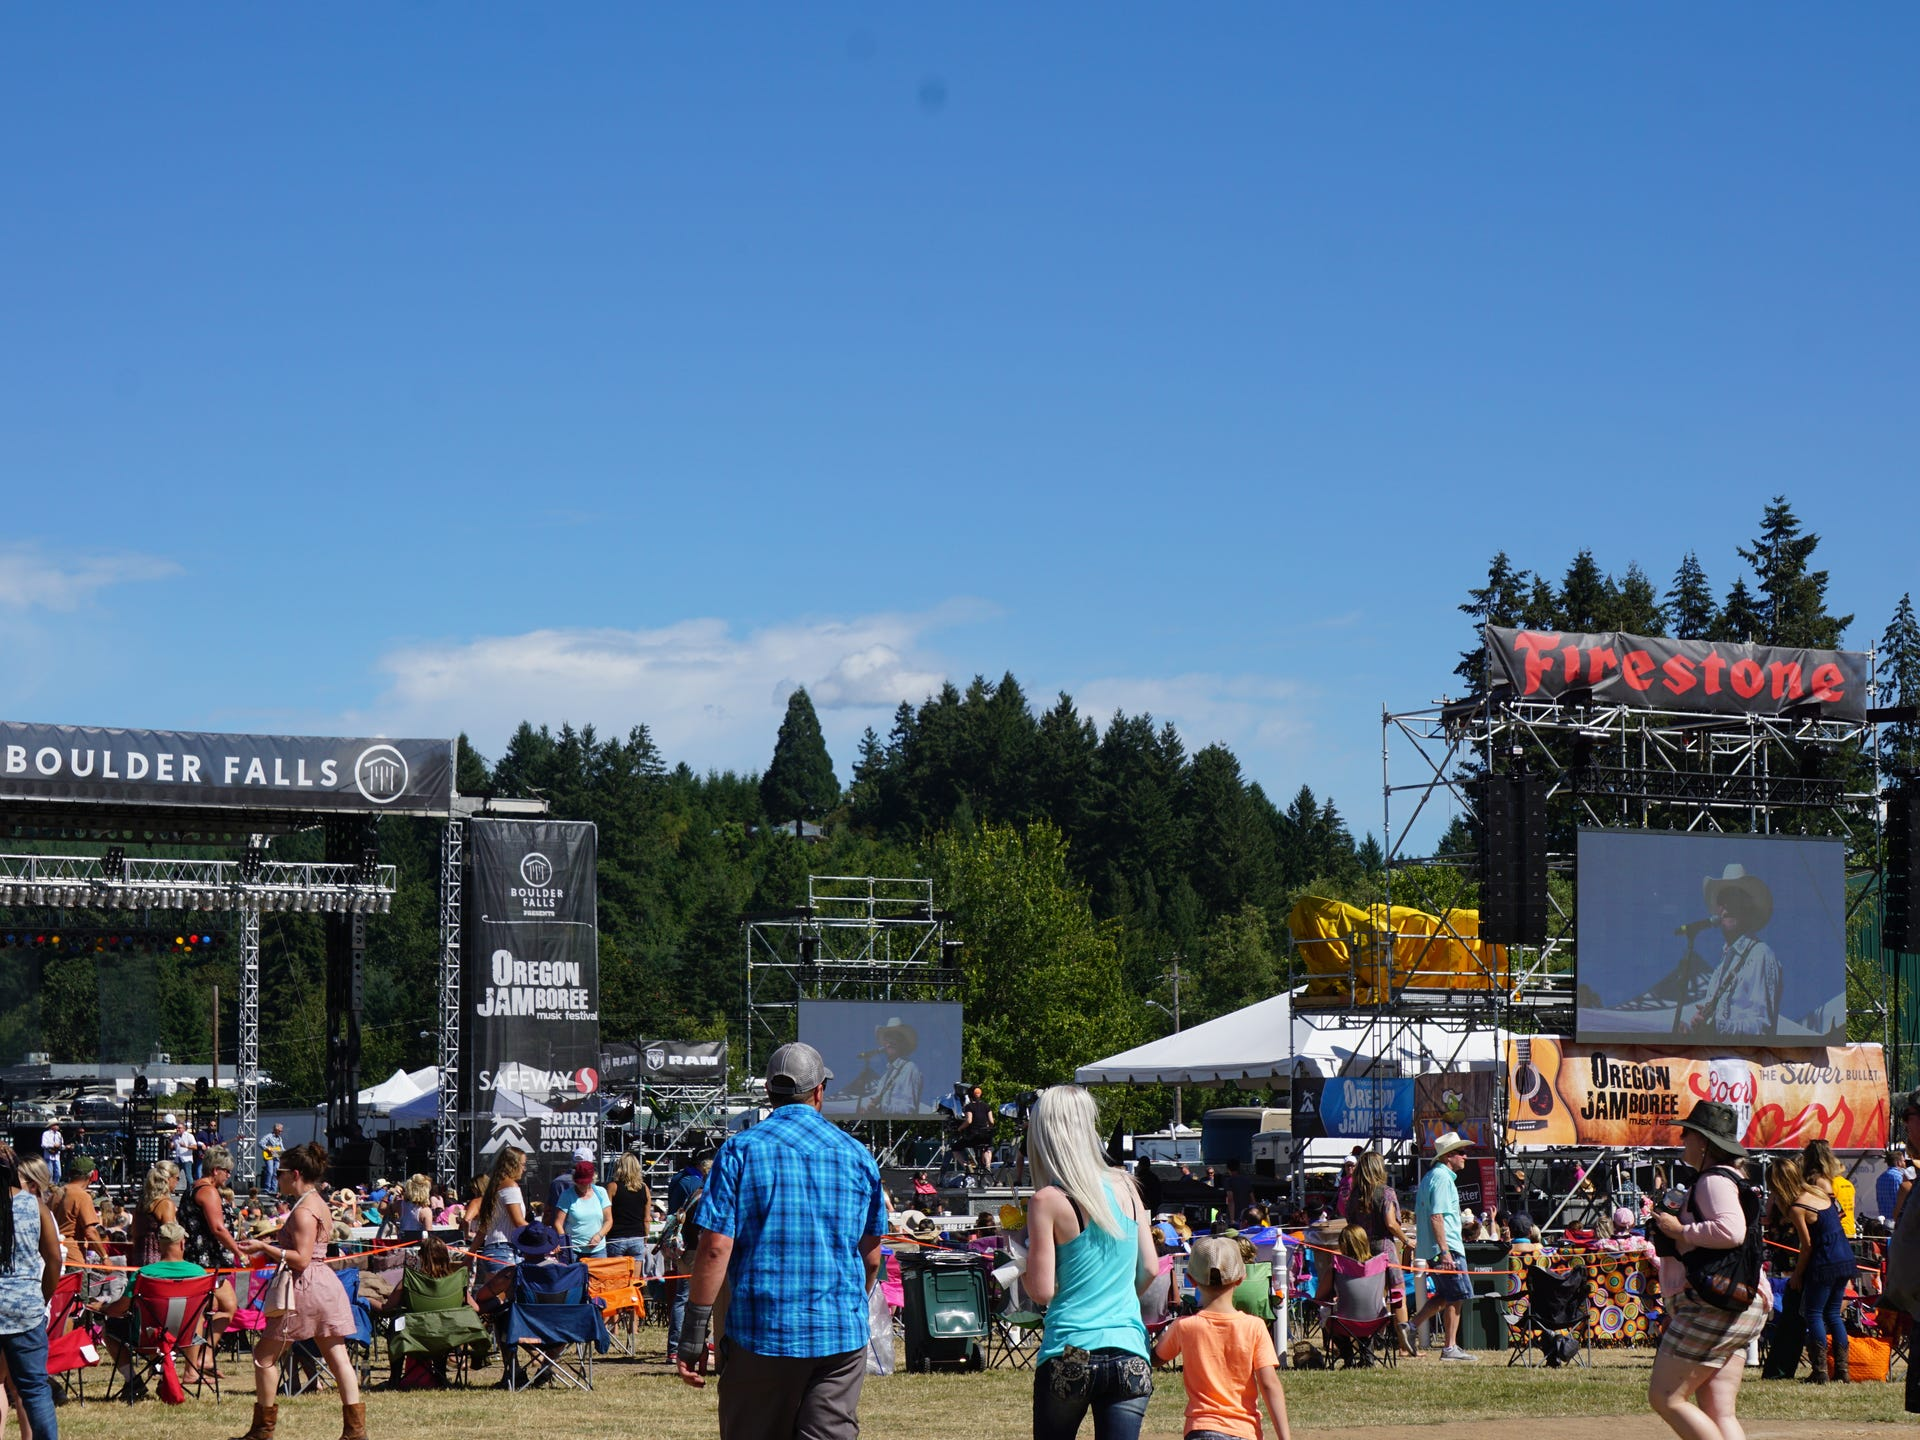 PHOTOS: Snapshots from the 2018 Oregon Jamboree in Sweet Home